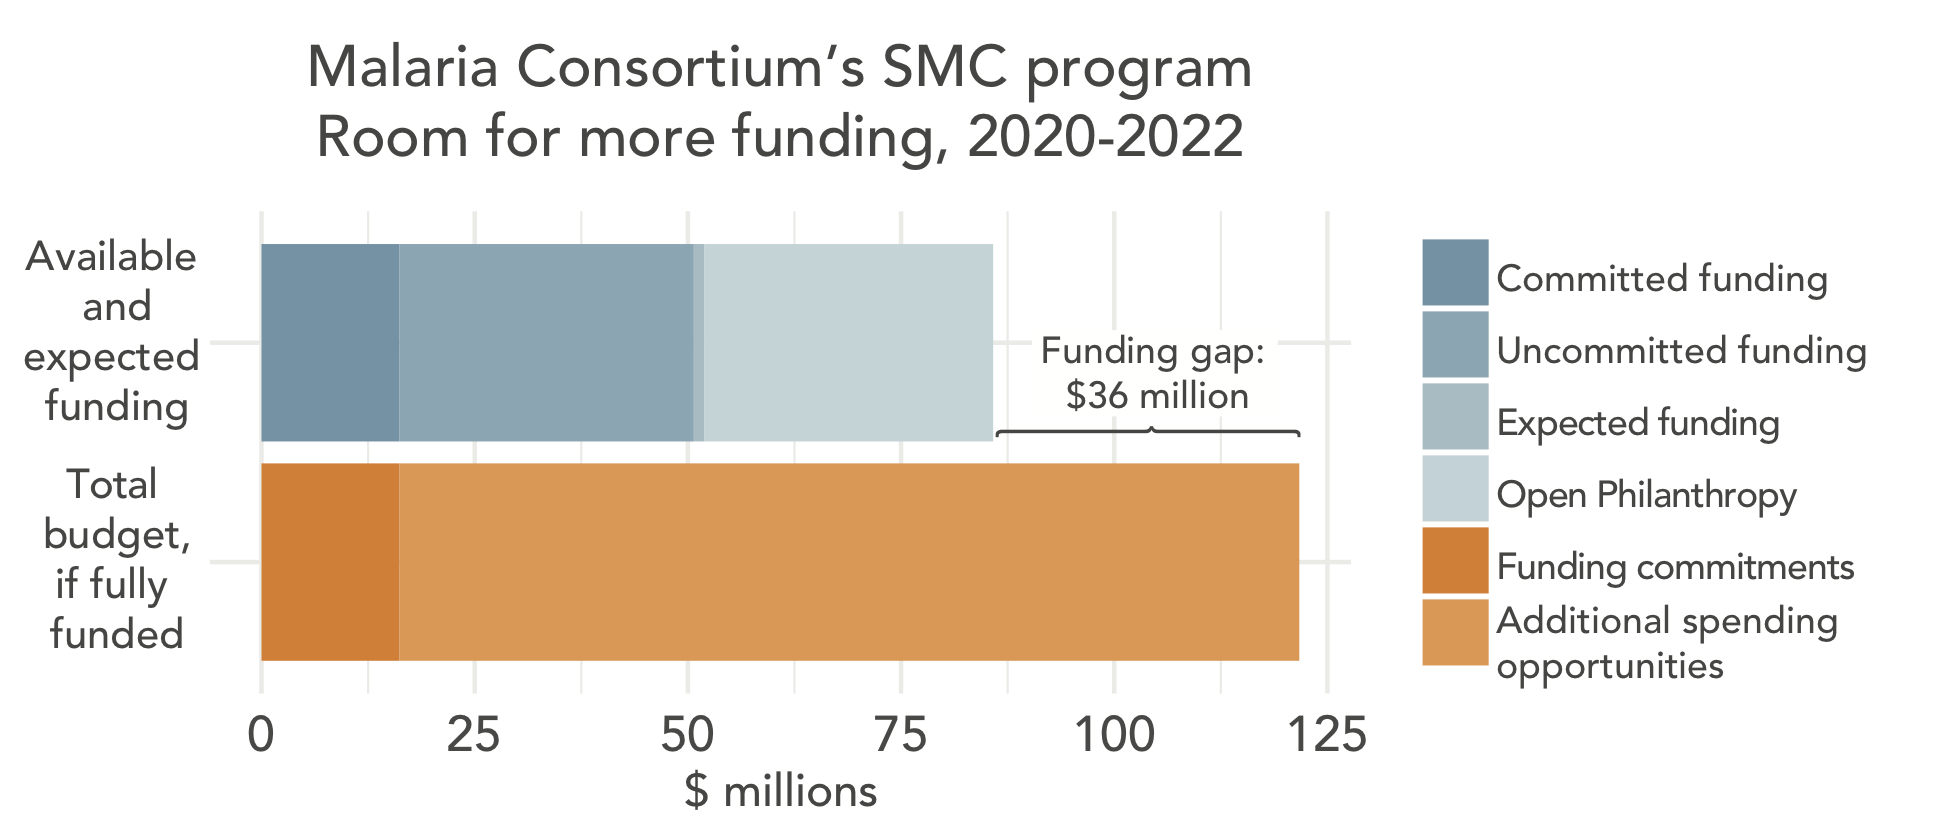 Room for more funding for Malaria Consortium's SMC program 2020-2022